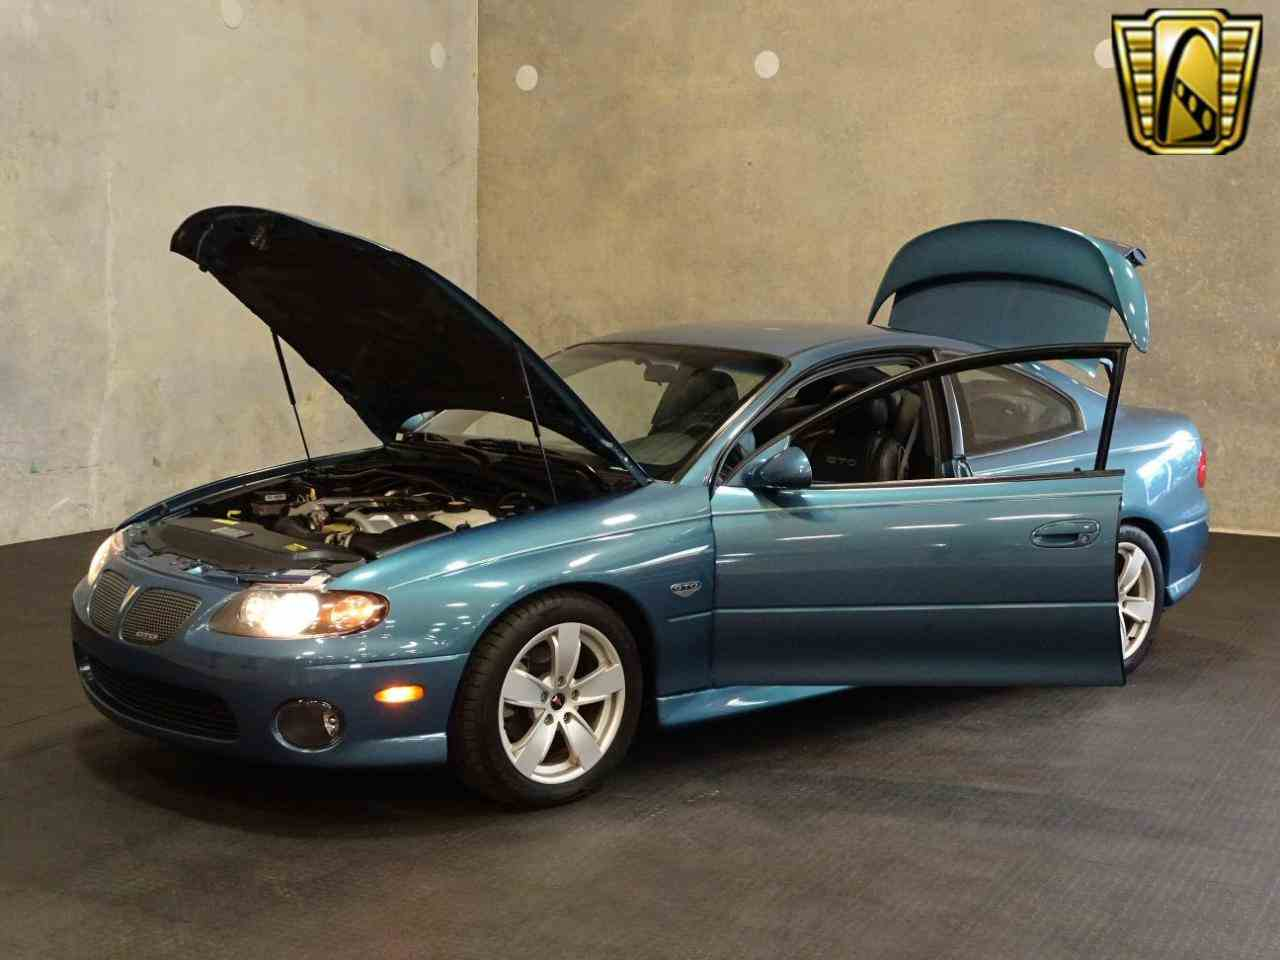 Large Picture of '04 GTO - $21,995.00 - KDOG